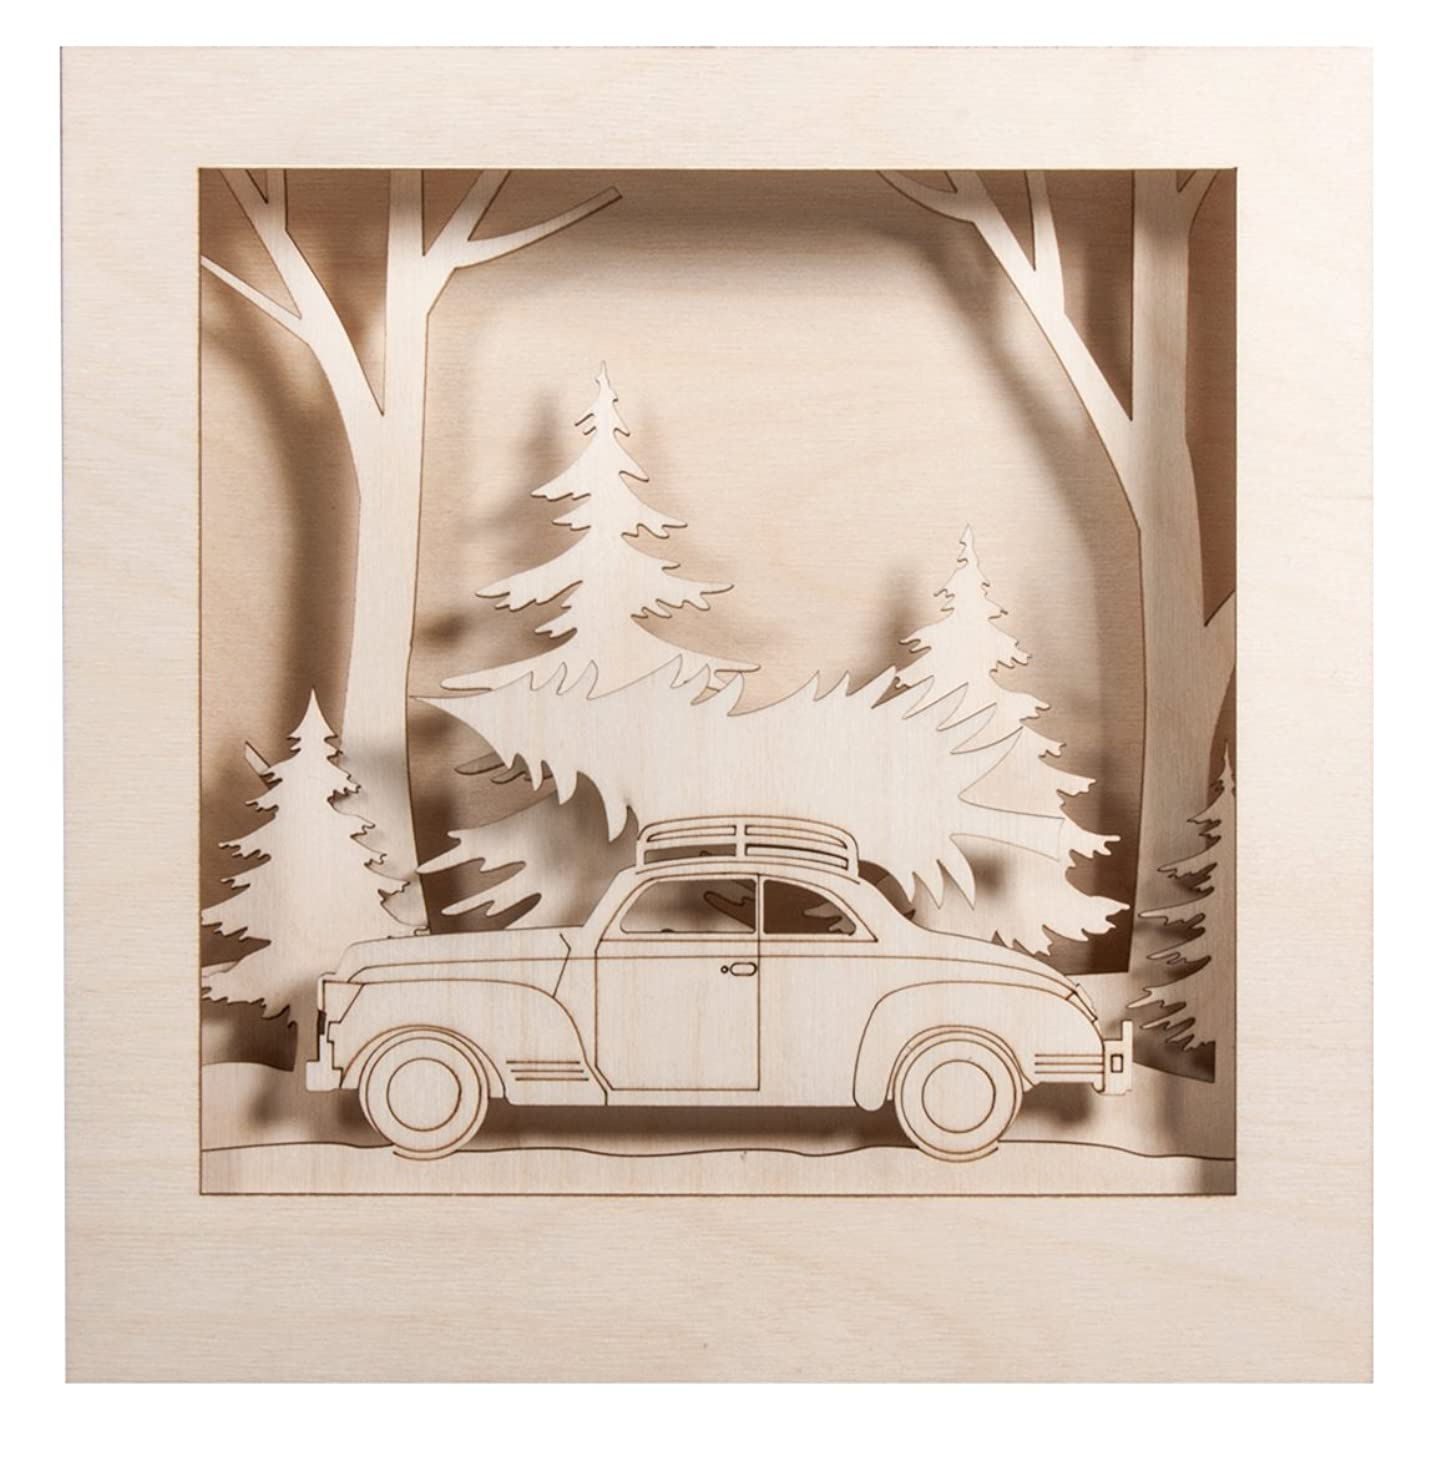 Rayher 46307000 Shadow Box Building Kit with 3D Winter Car Scenery, DIY Wood Craft Set, 14 Slot-Together Pieces, 30x30x6.6cm